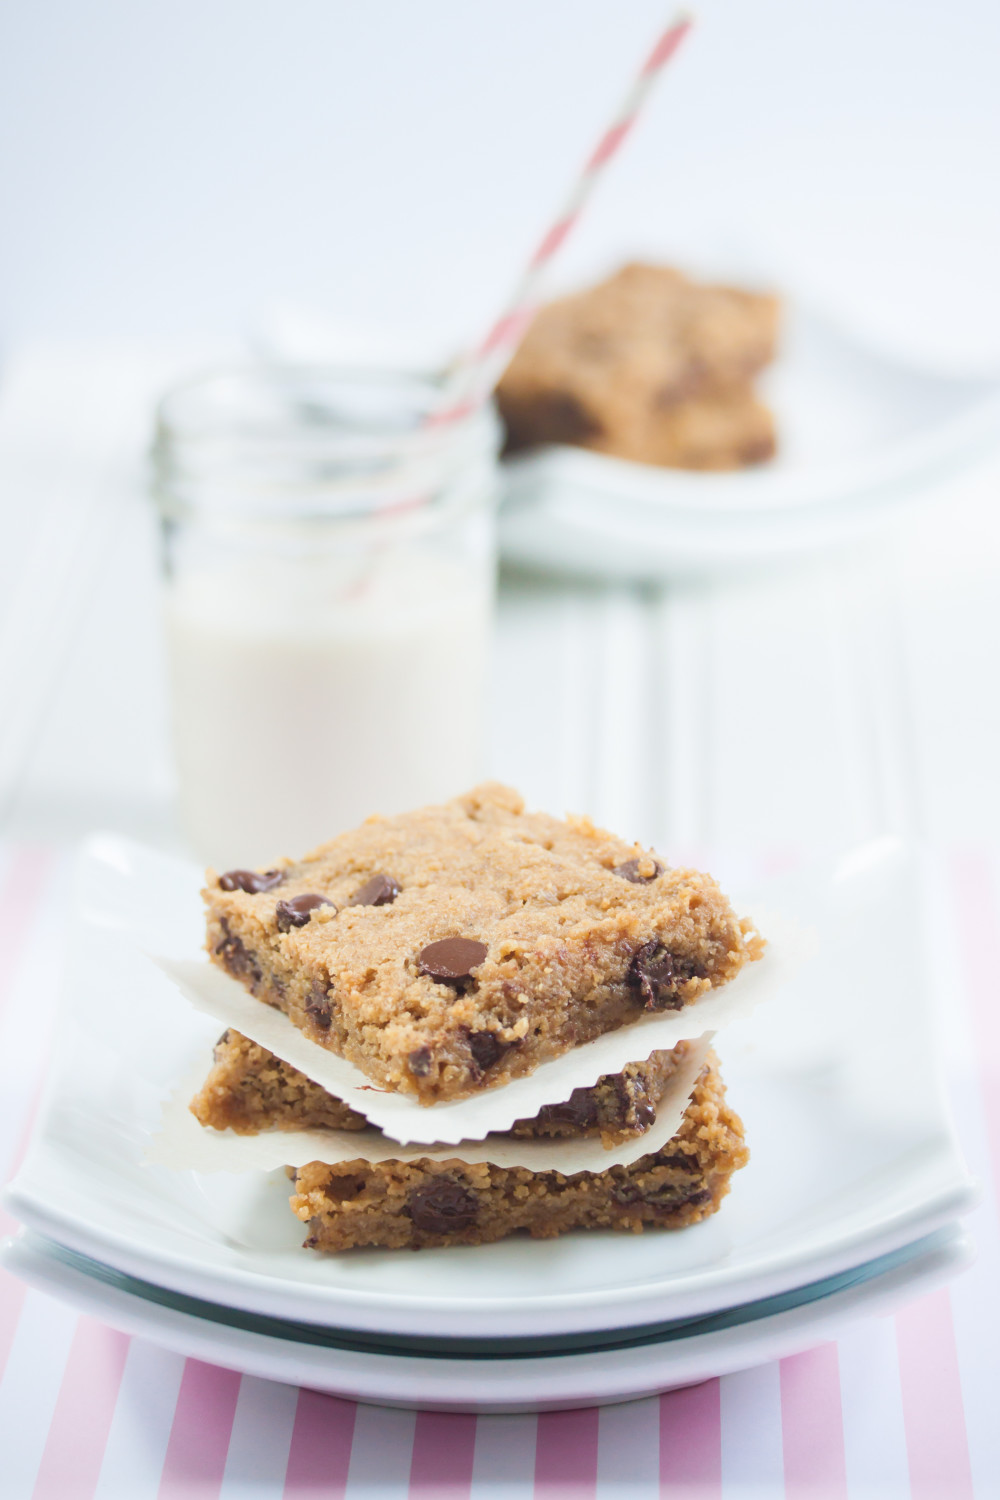 Chocolate Chip Peanut Butter Cookie Bars | Vegan Gluten Free | Allyson Kramer